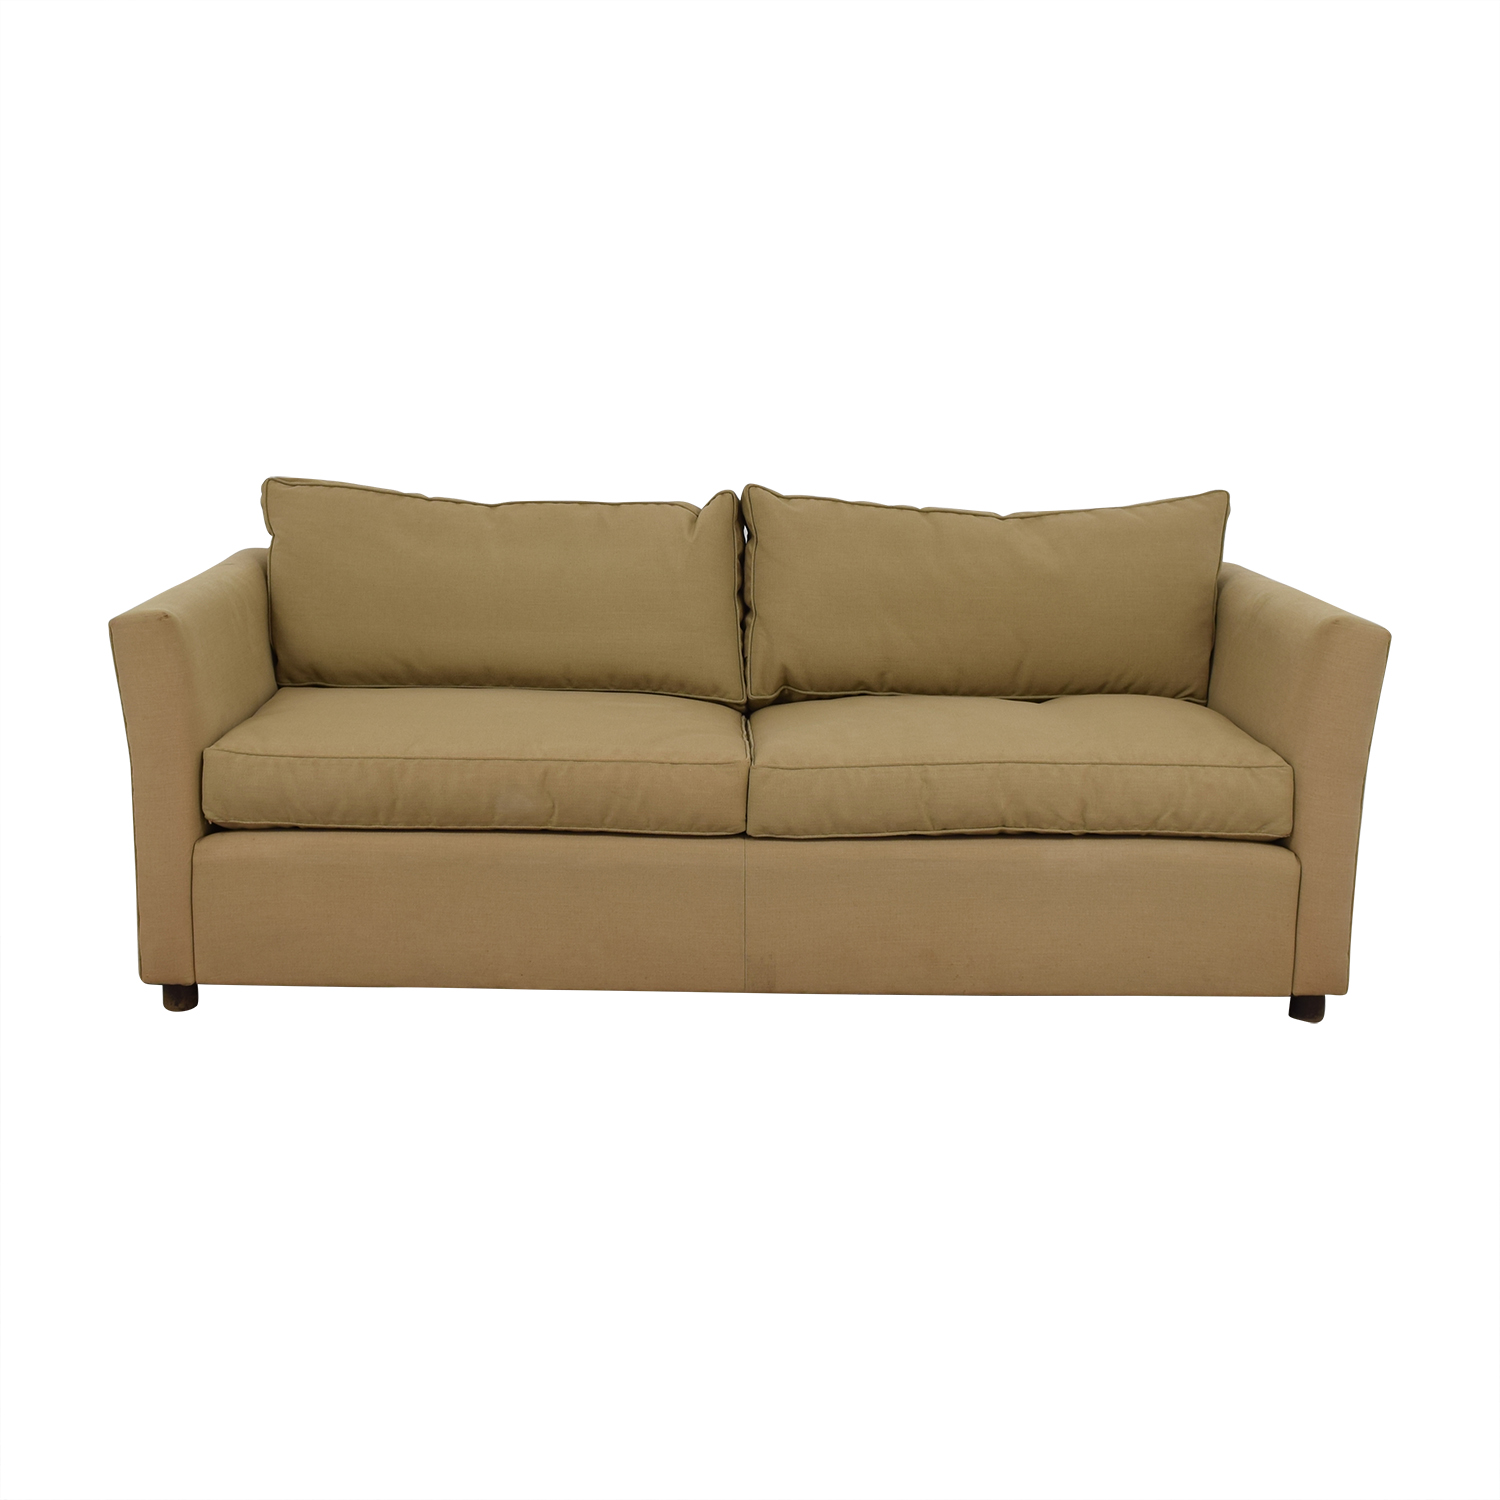 Beige Two-Cushion Sofa price